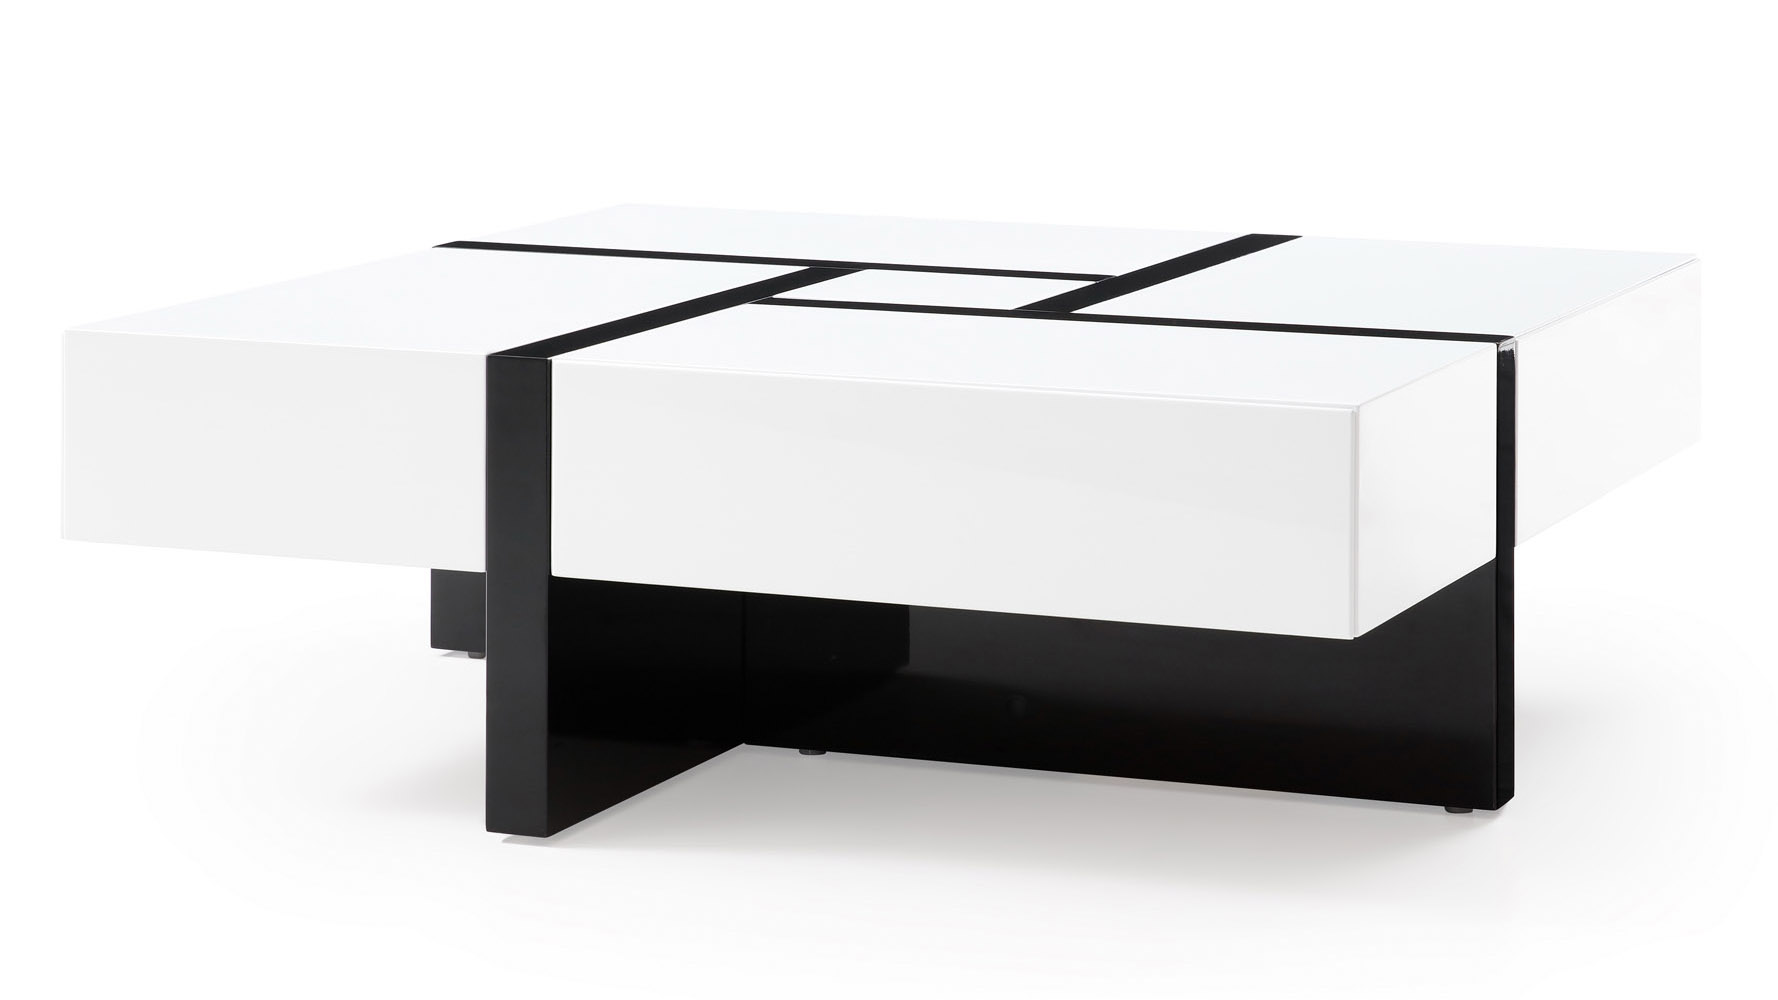 modern coffee table furniture for your living room now mcintosh square storage white black lacquer zuri acrylic accent decorative tables wisteria round pedestal lamps metal trunk